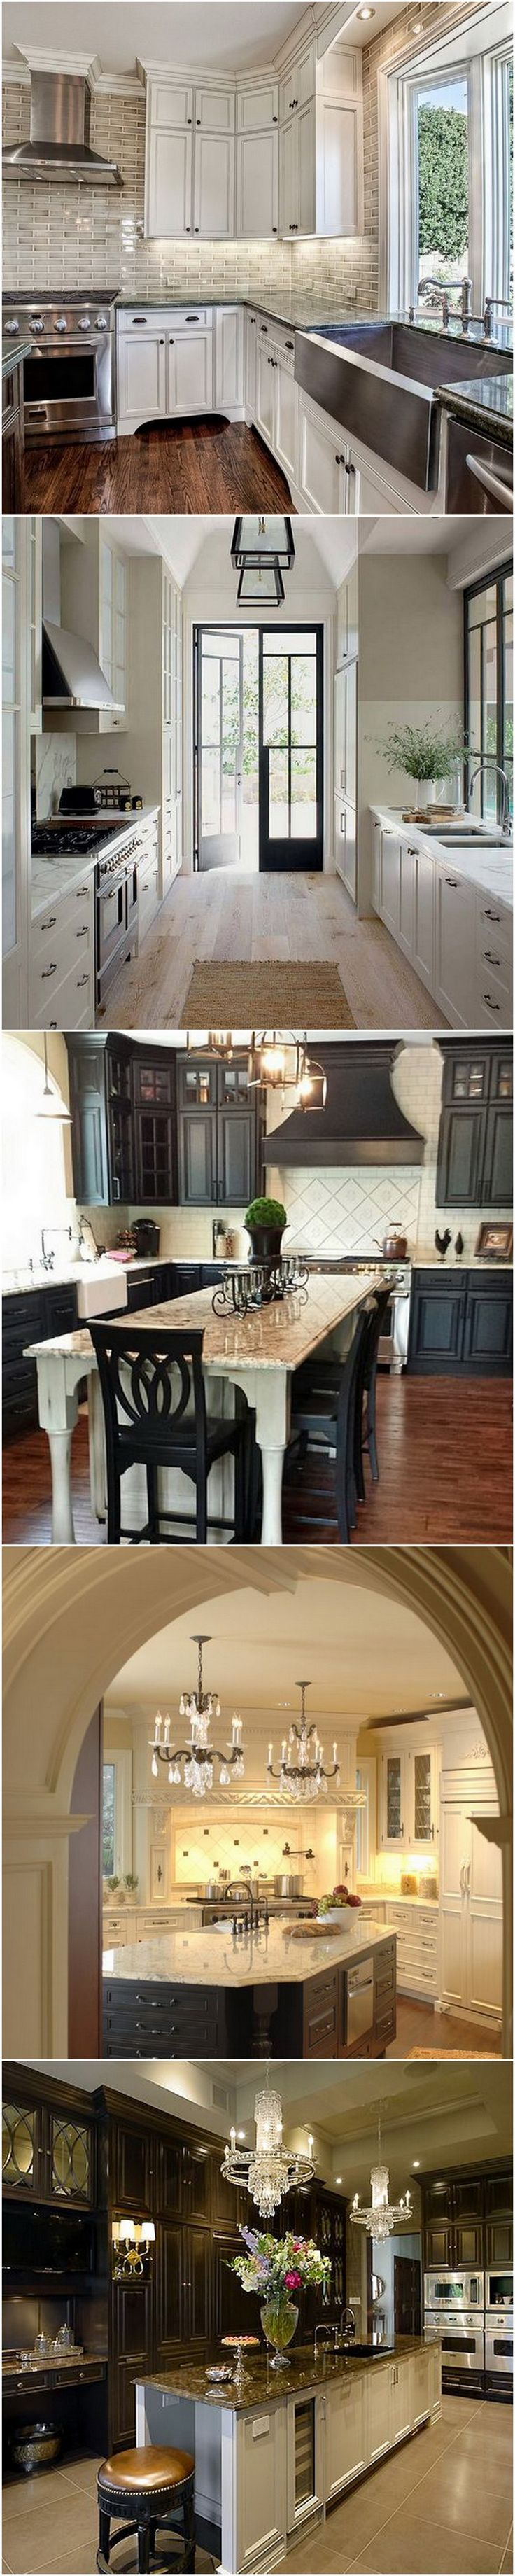 love the hood with crown around ceiling! Love stainless apron sink! Also love the way the hood on the third picture is not touching cabinets on either side!